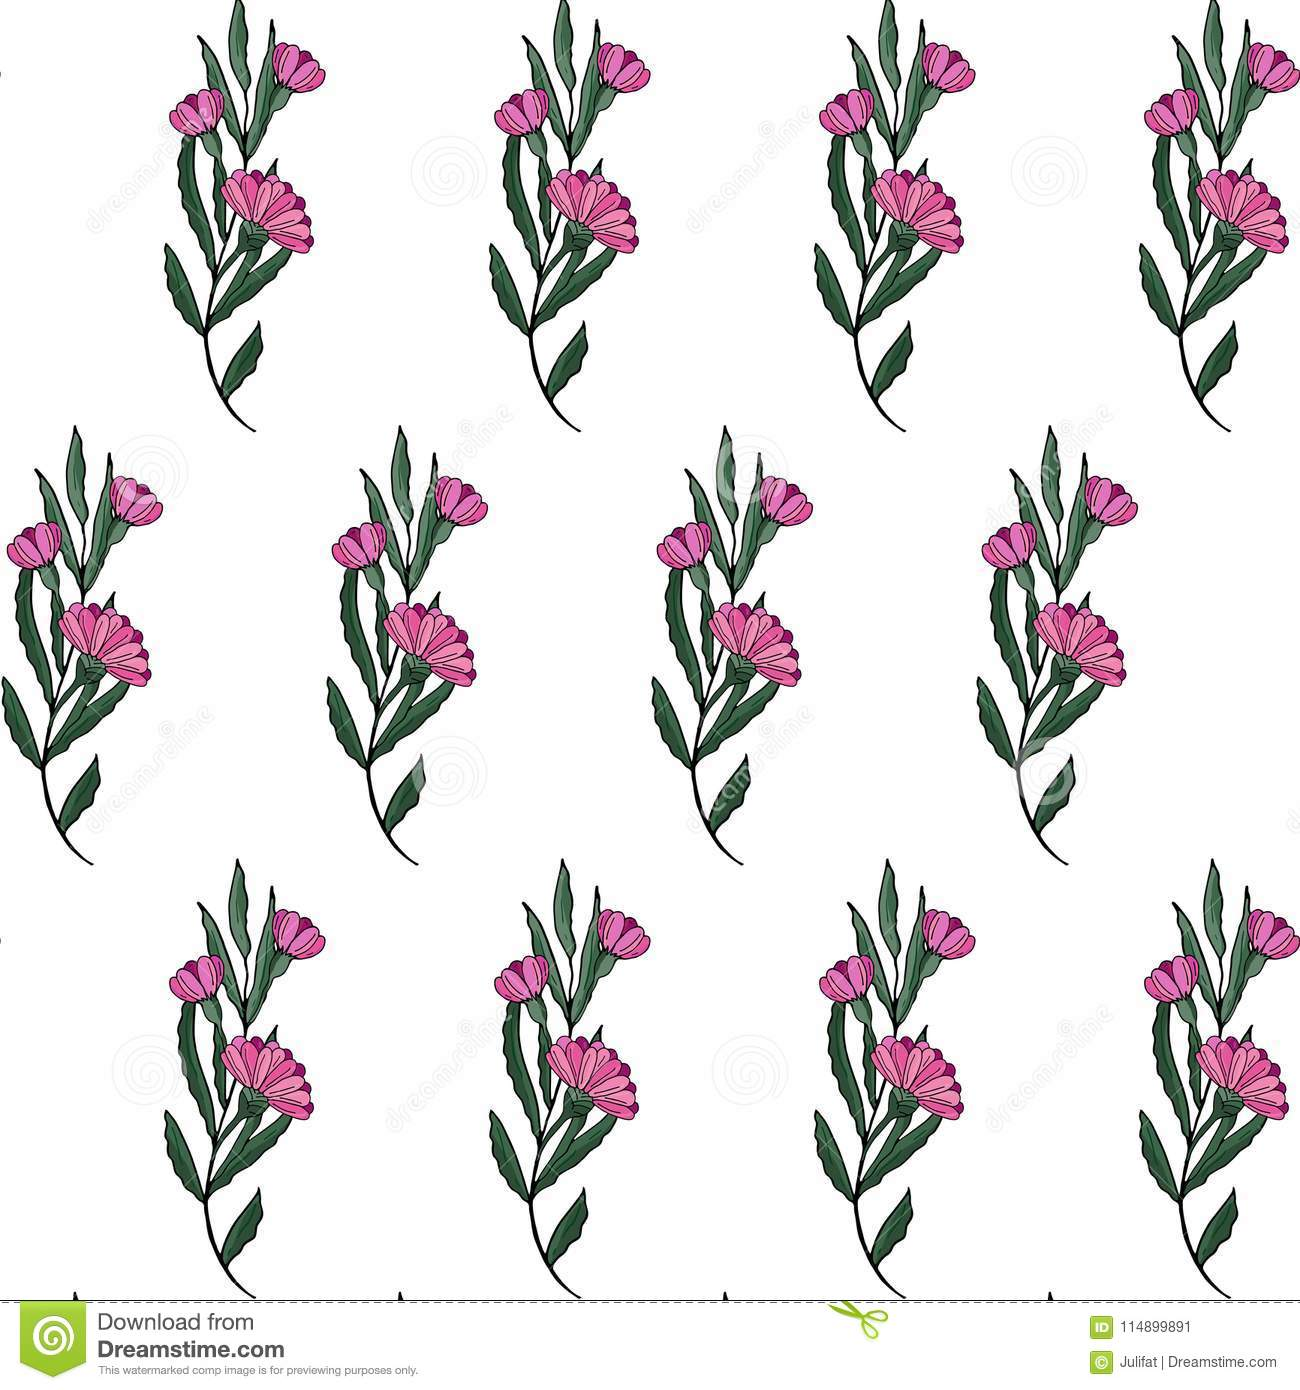 Seamless pattern. Cute pattern in small flower. Pink gerbera flowers. White background. Ditsy floral